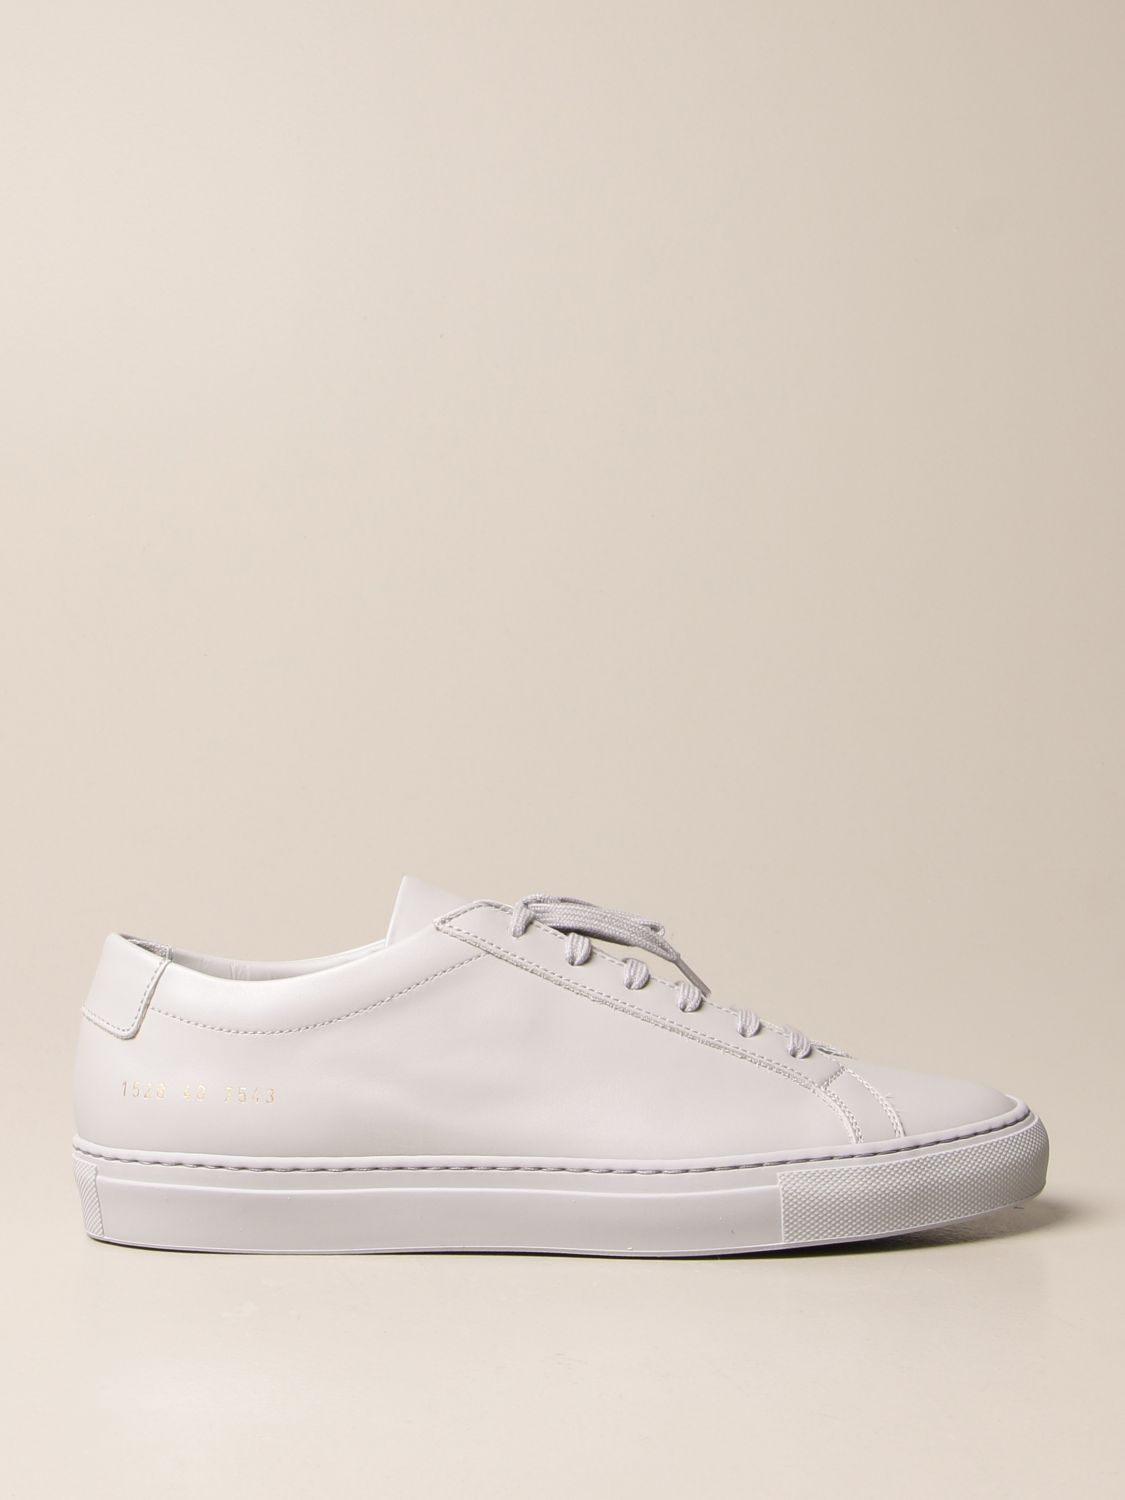 Sneakers Common Projects: Sneakers herren Common Projects grau 1